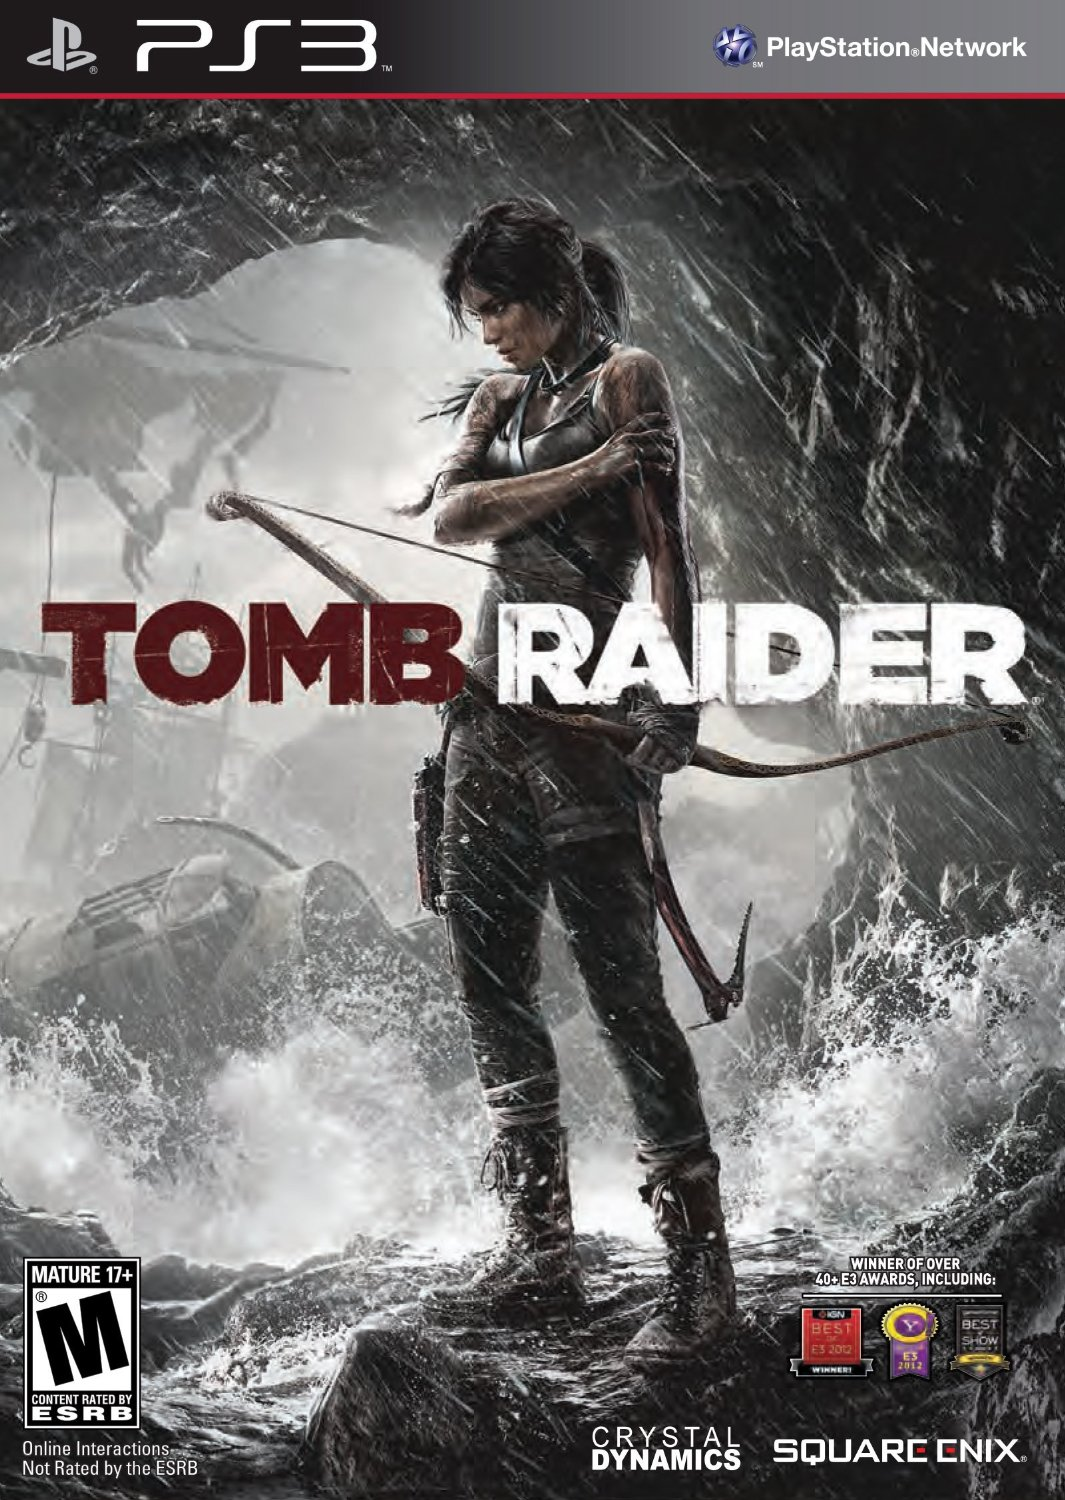 Tomb Raider 2013 Strategywiki The Video Game Walkthrough And